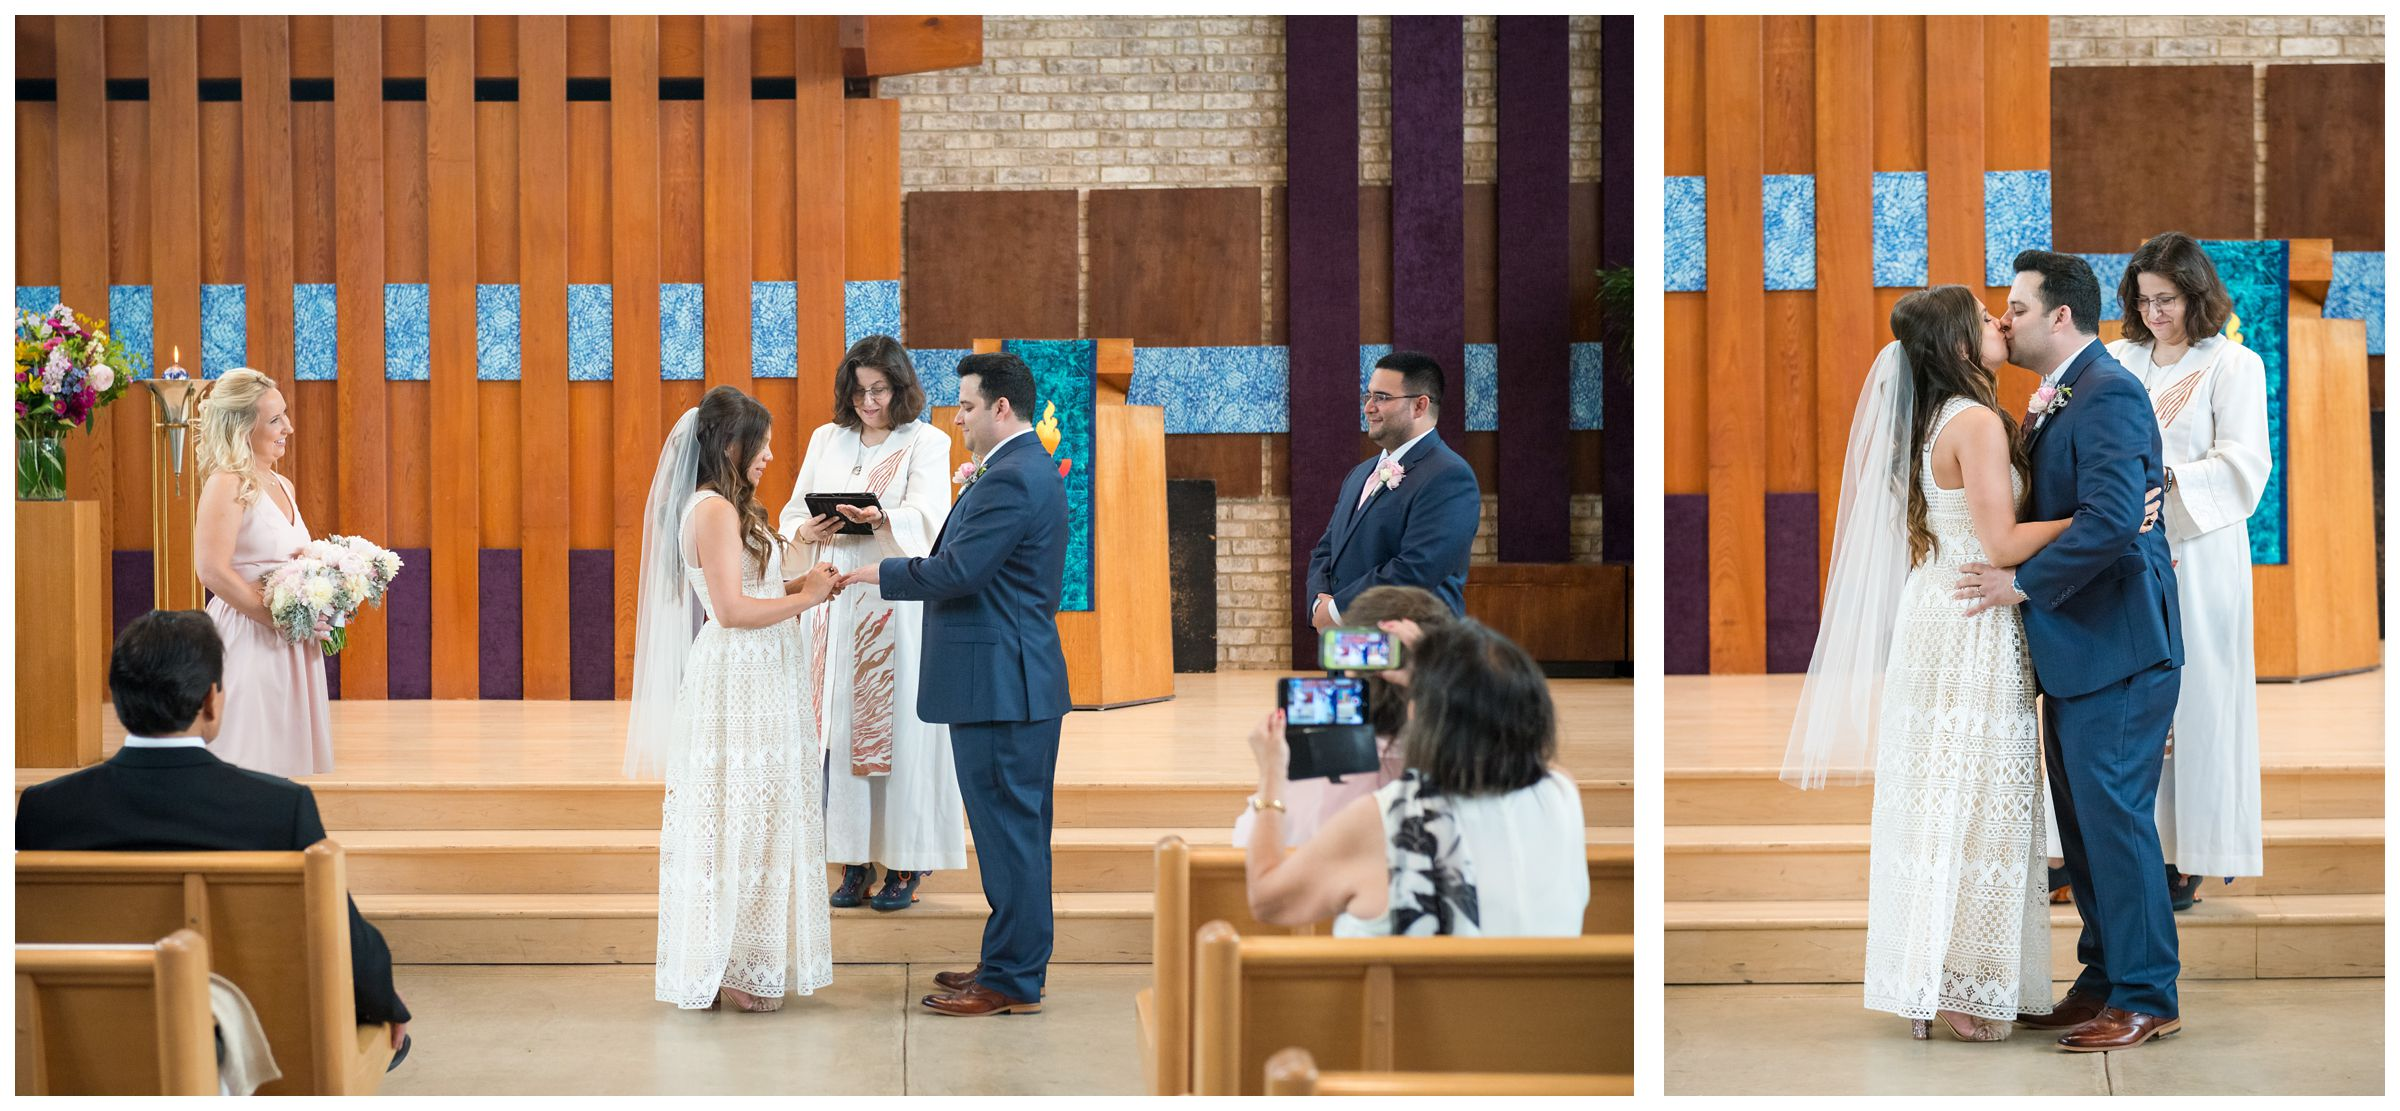 ring exchange and first kiss during wedding ceremony at the Unitarian Universalist Church in Arlington, Virginia